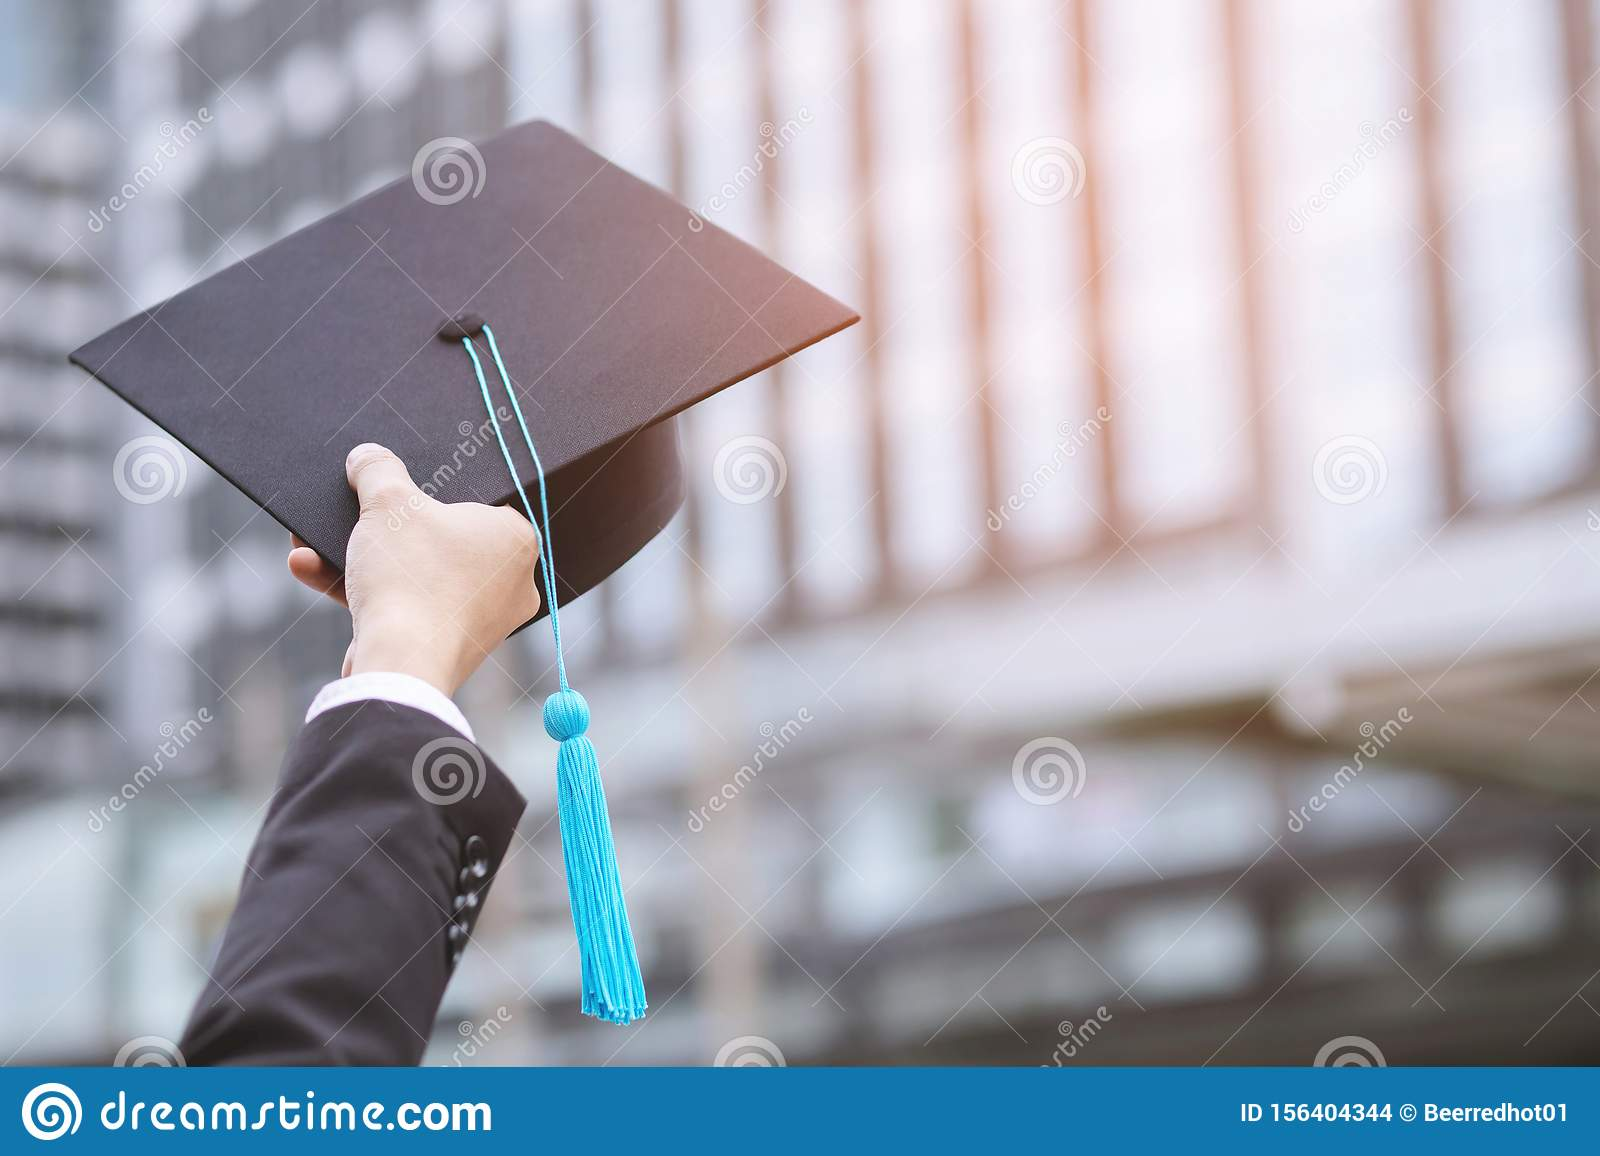 People show hand hold show hat Blue tassels in background School building. Shot of graduation cap during Commencement University D